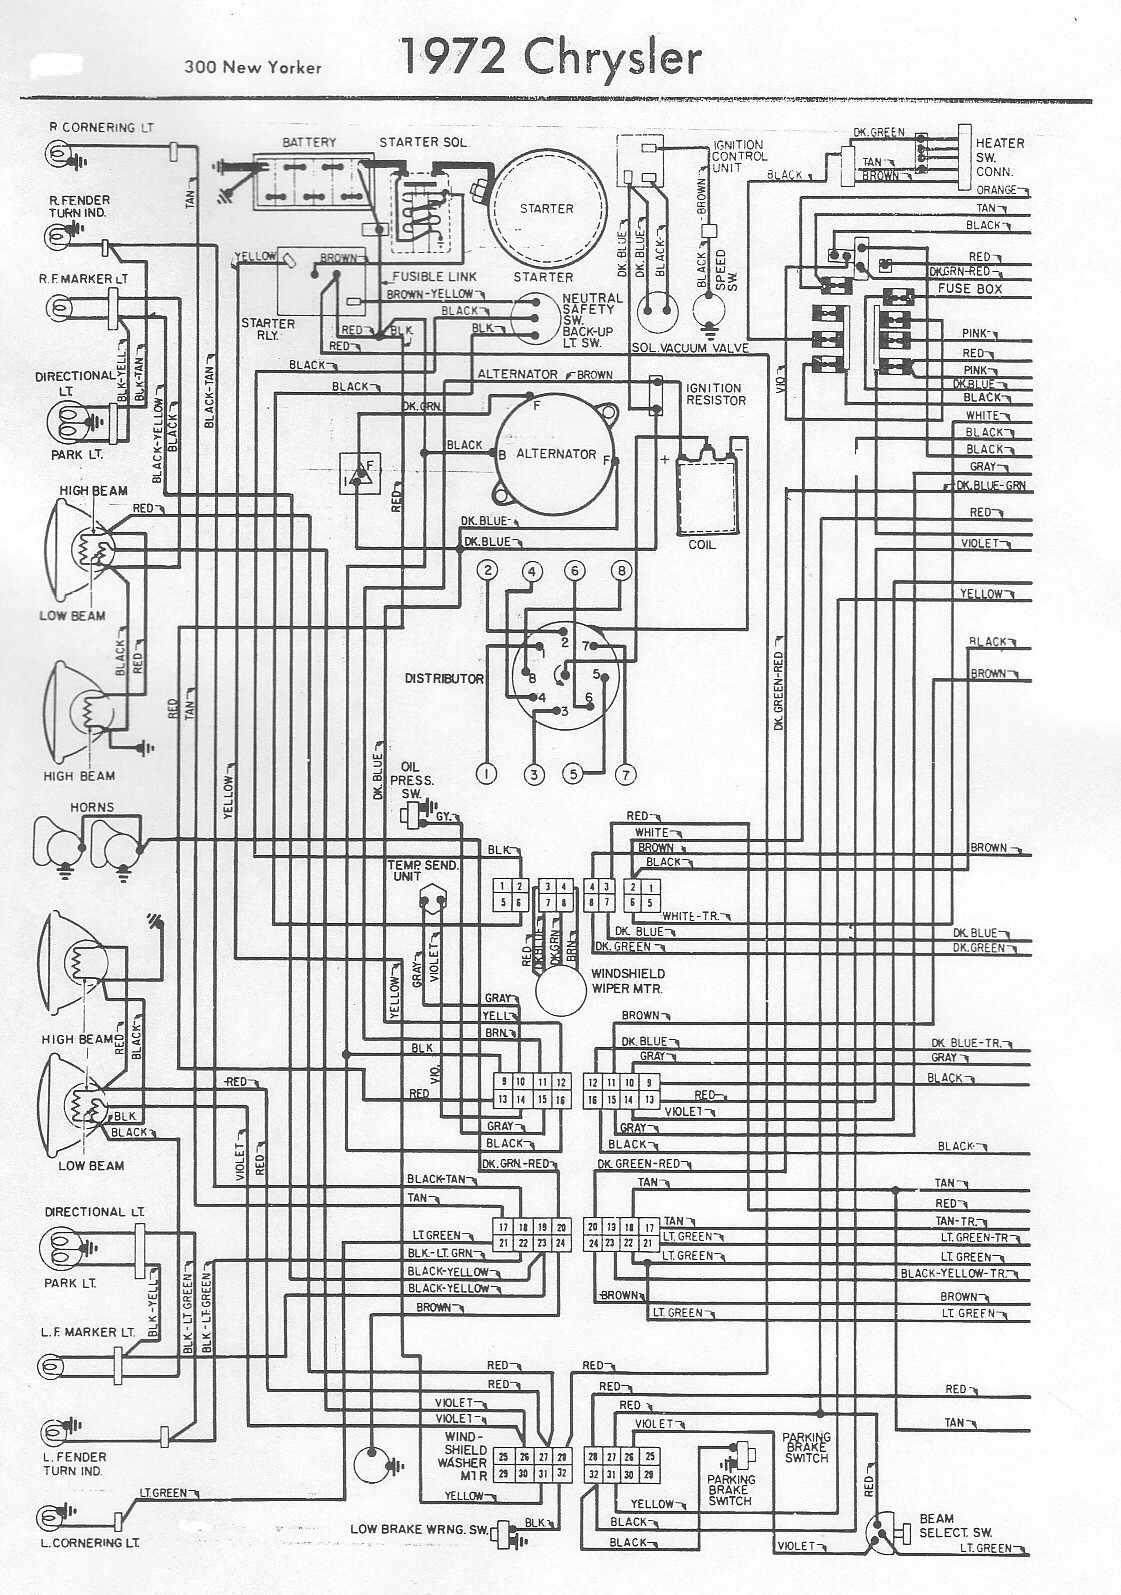 chrysler car manuals wiring diagrams pdf fault codes rh automotive manuals net Model A Wiring Diagram Chart Model A Wiring Diagram Chart